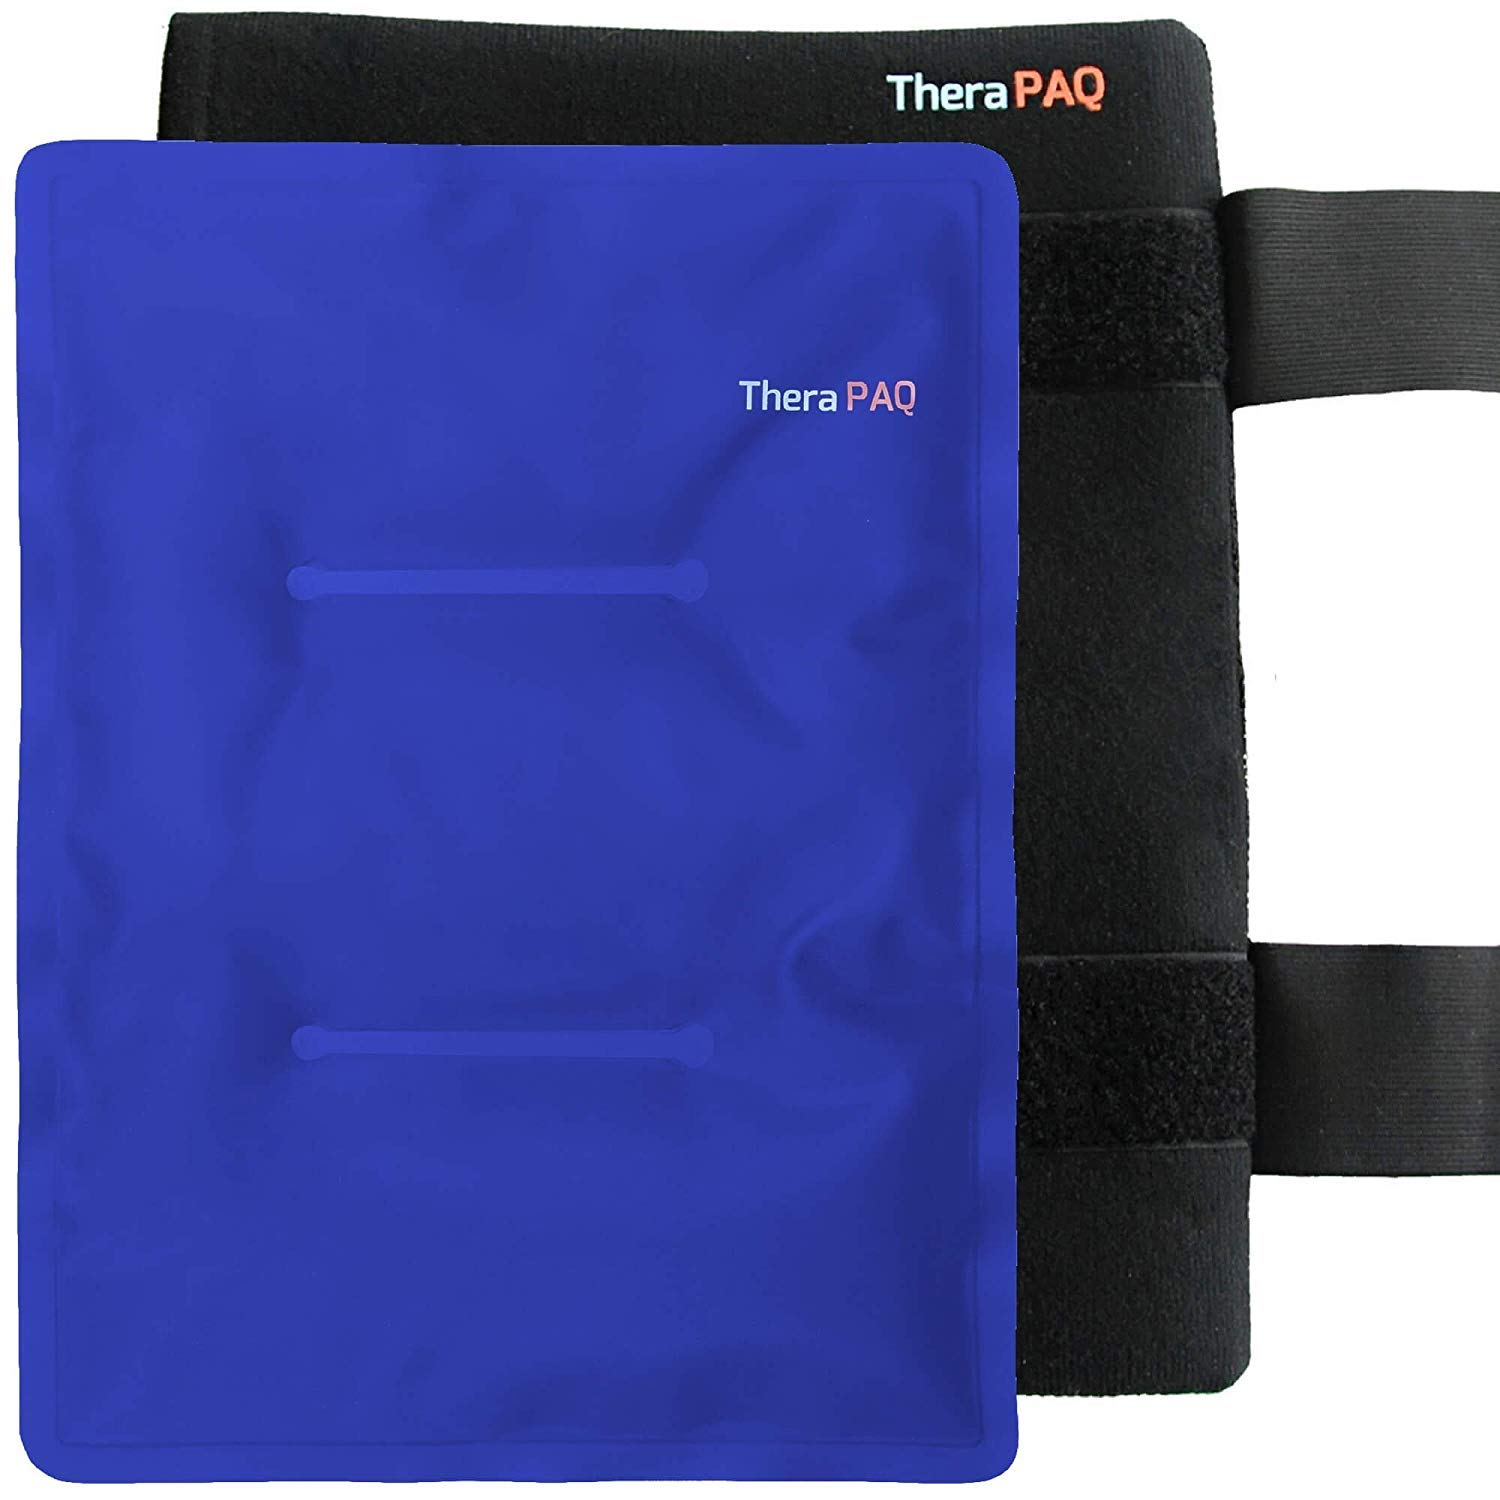 Large Reusable Gel Ice Pack with Wrap by TheraPAQ - Hot & Cold Therapy for Hip, Shoulder, Back, Knee - Pain Relief for Injuries, Recovery, Swelling, Aches, Bruises & Sprains (XL Blue Pack: 14'' X 11'')